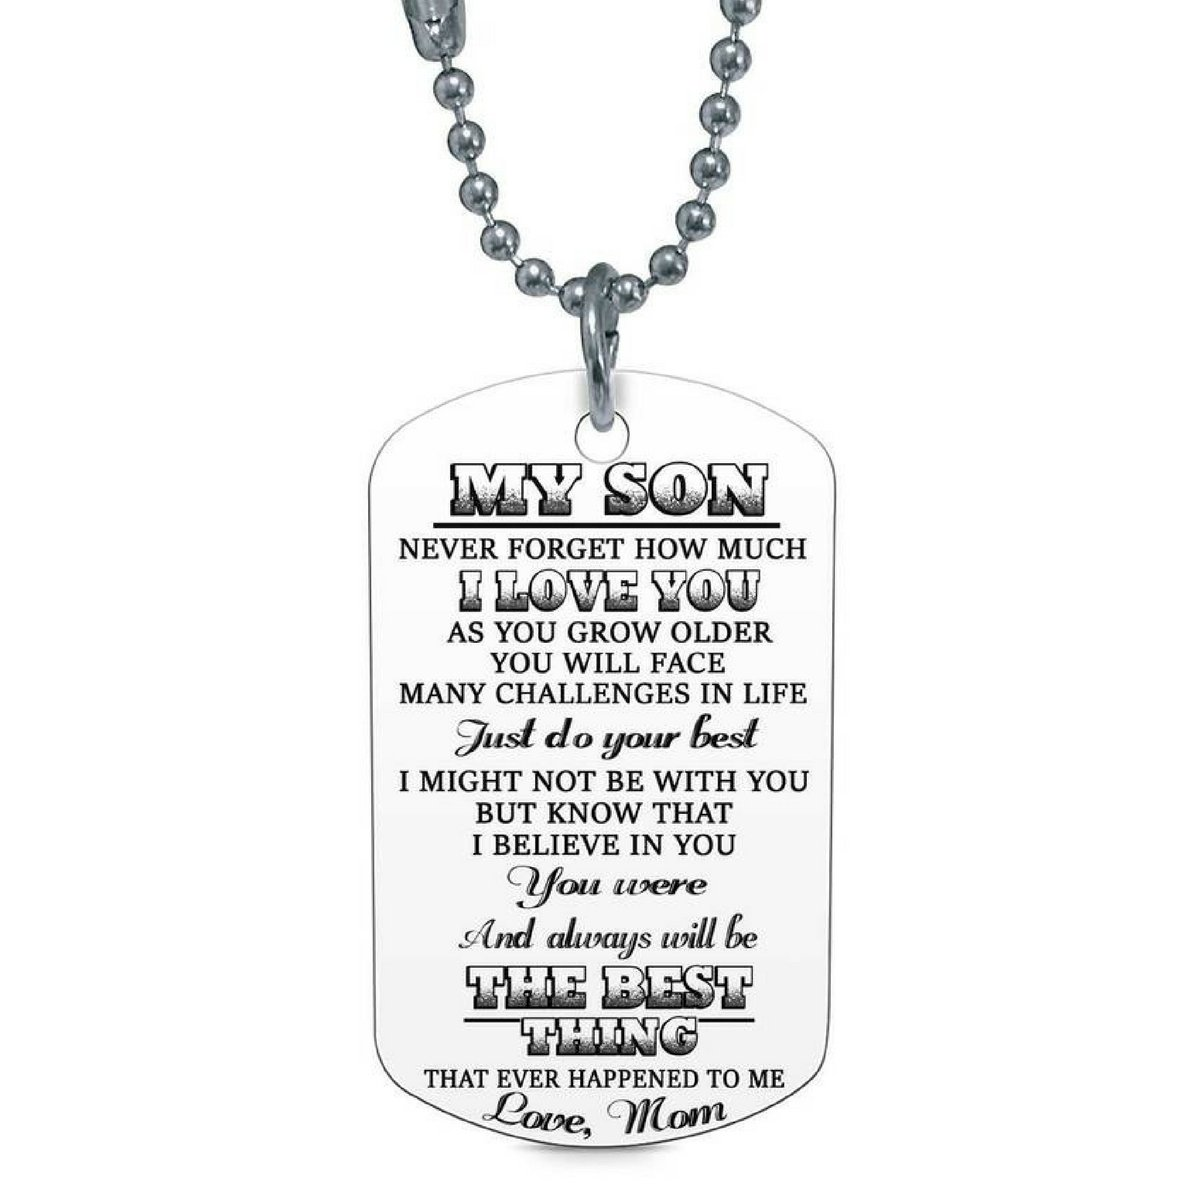 My Son Never Forget How Much I Love Mom Mommy Dog Tag Military Air Force Navy Coast Guard Necklace Ball Chain Gift for Best Son Birthday Graduation Stainless Steel Stashix UK_B07BTCG2HW